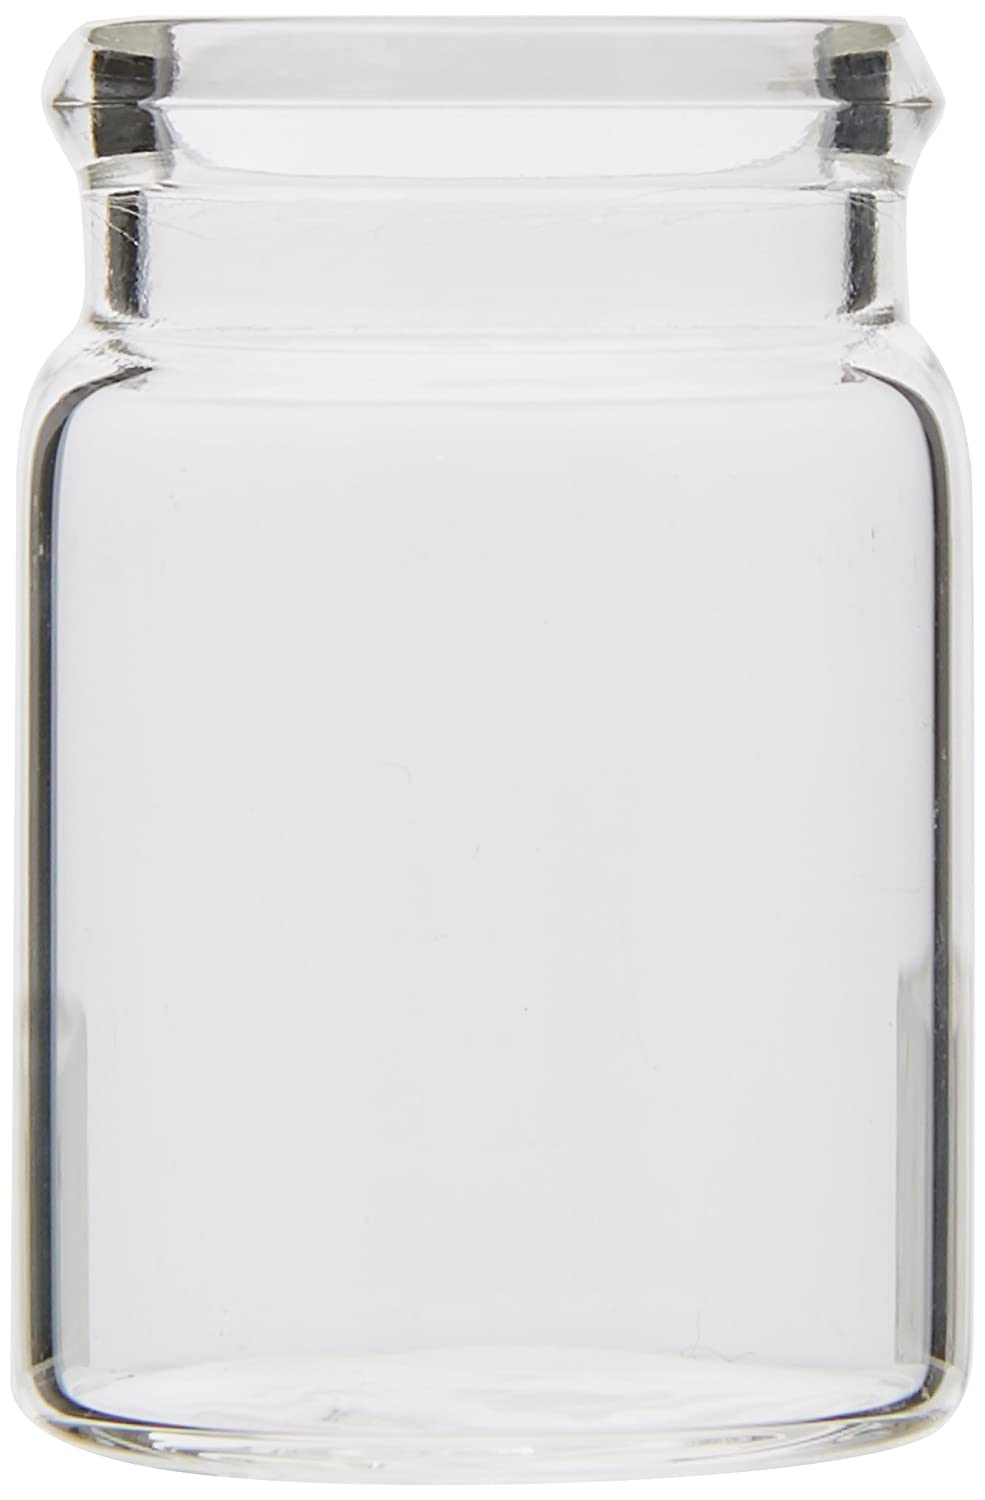 Wheaton 105000 Snap/Clip Top Vial, Glass, 7 mL (Pack of 190) Scilabware